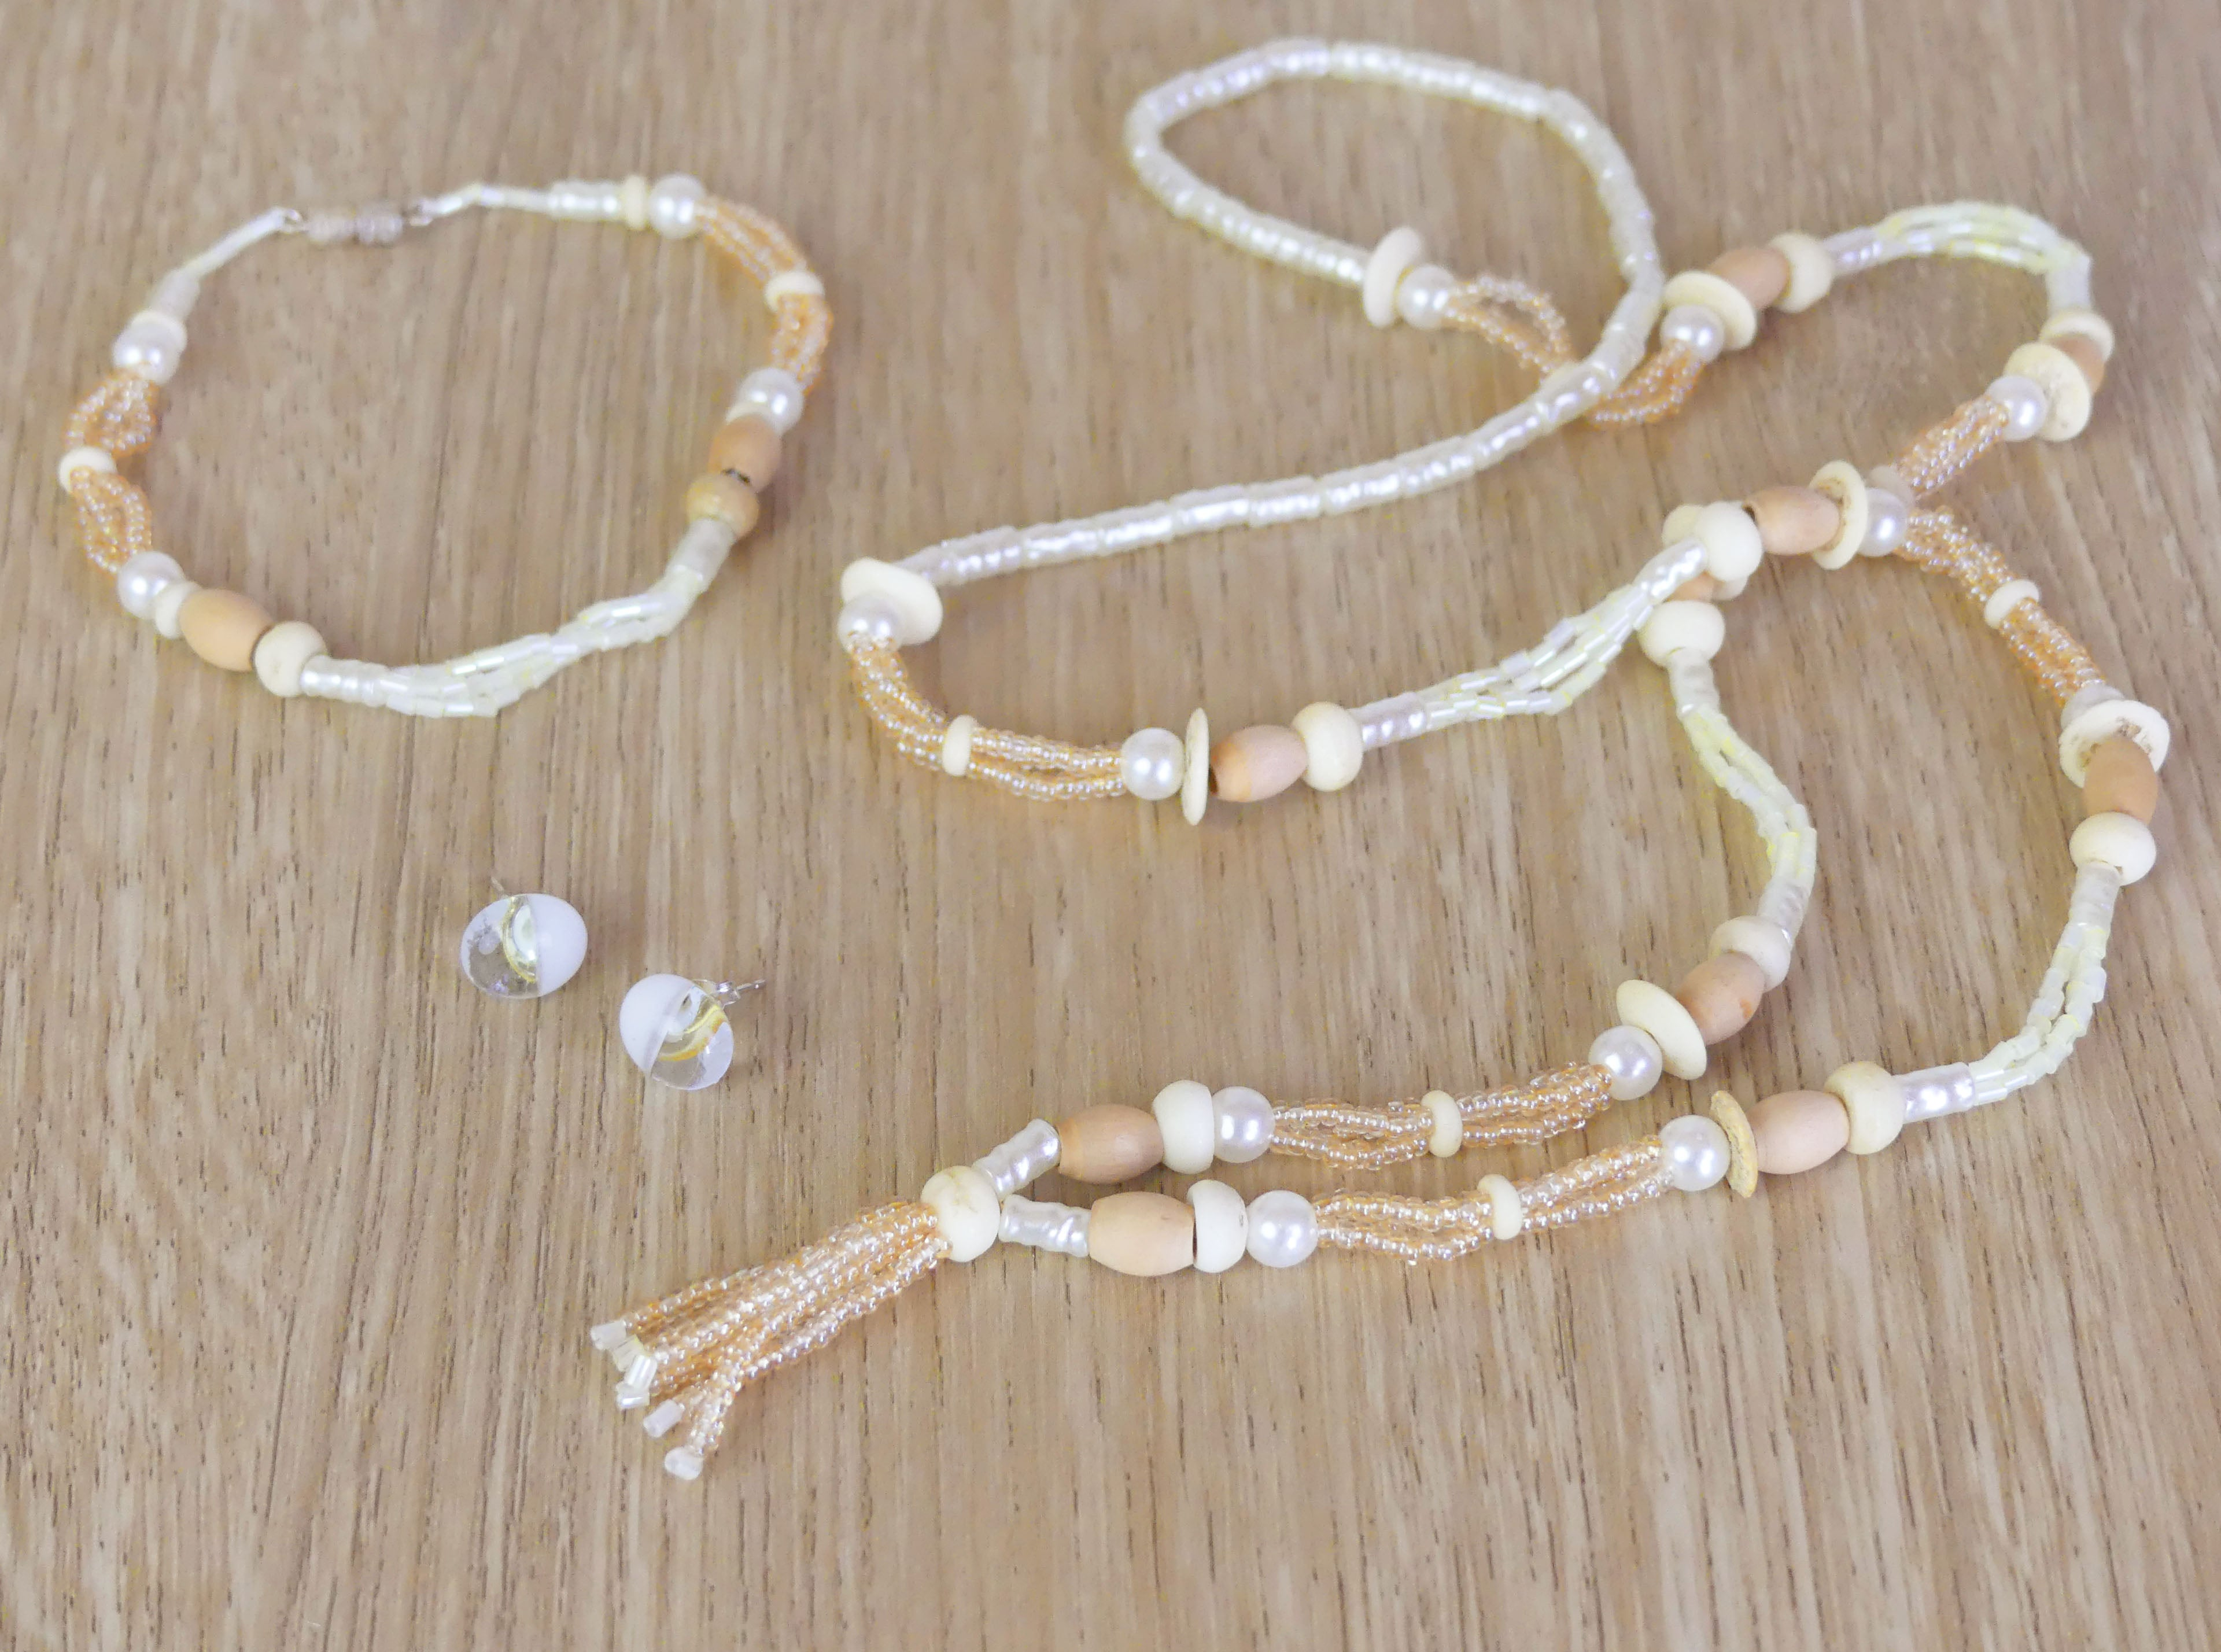 Beaded necklace, bracelet and glass earing set - natural